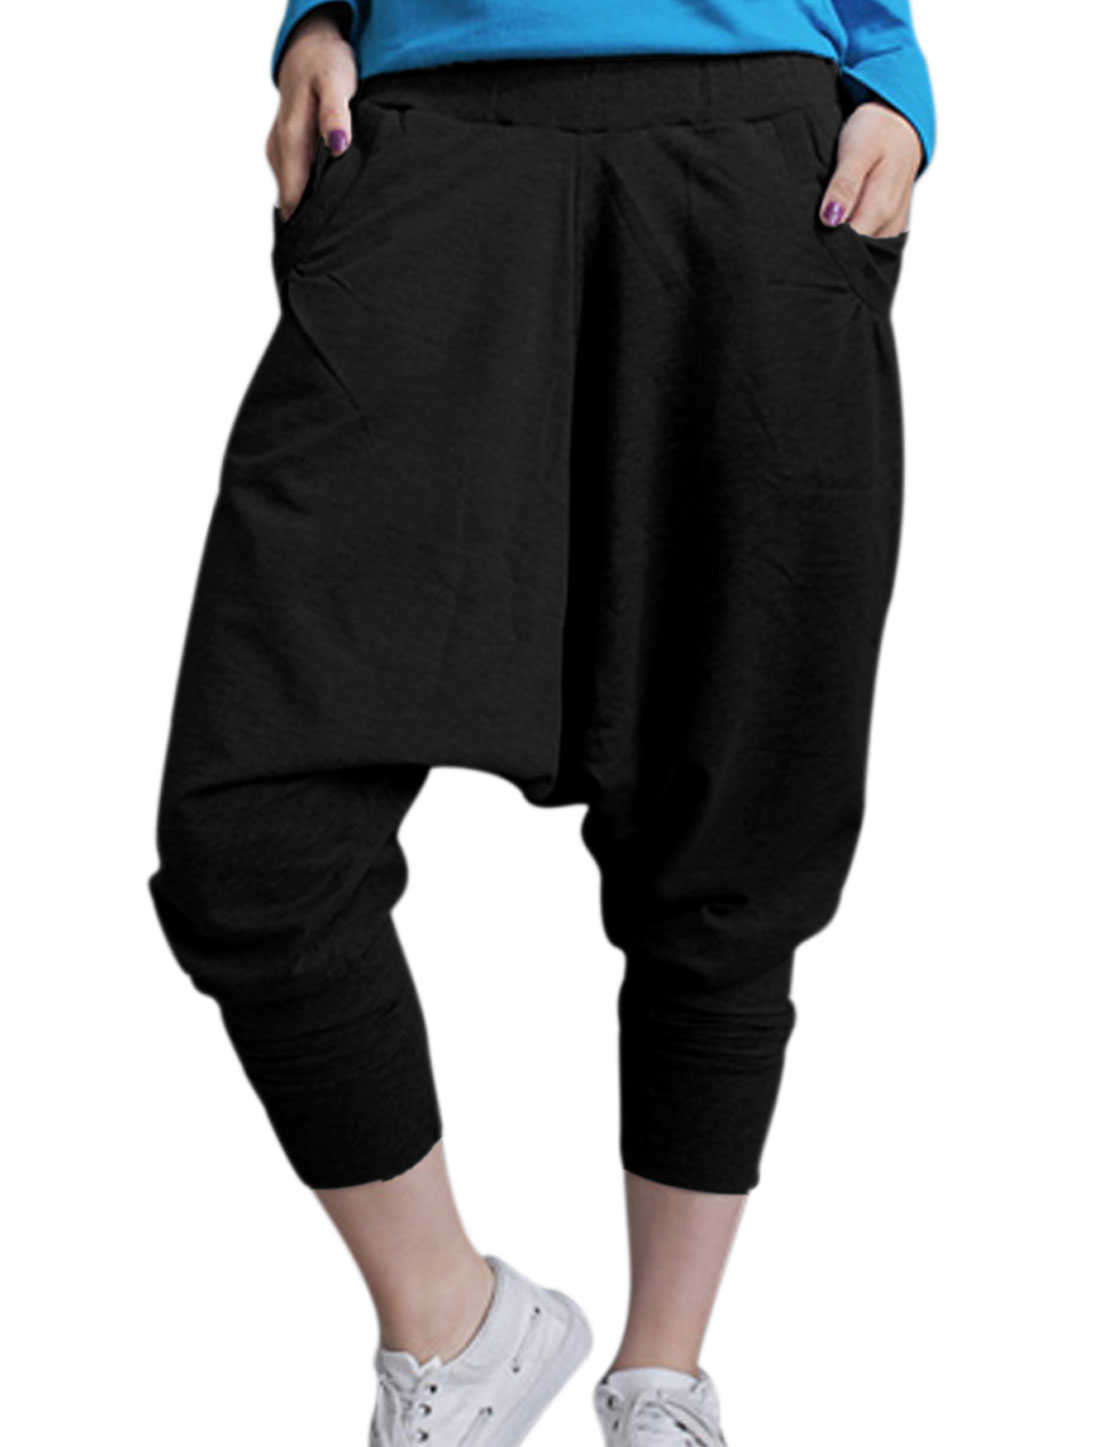 Lady Elastic Waist Slant w Hip Pockets Loose Crotch Harem Pants Black M